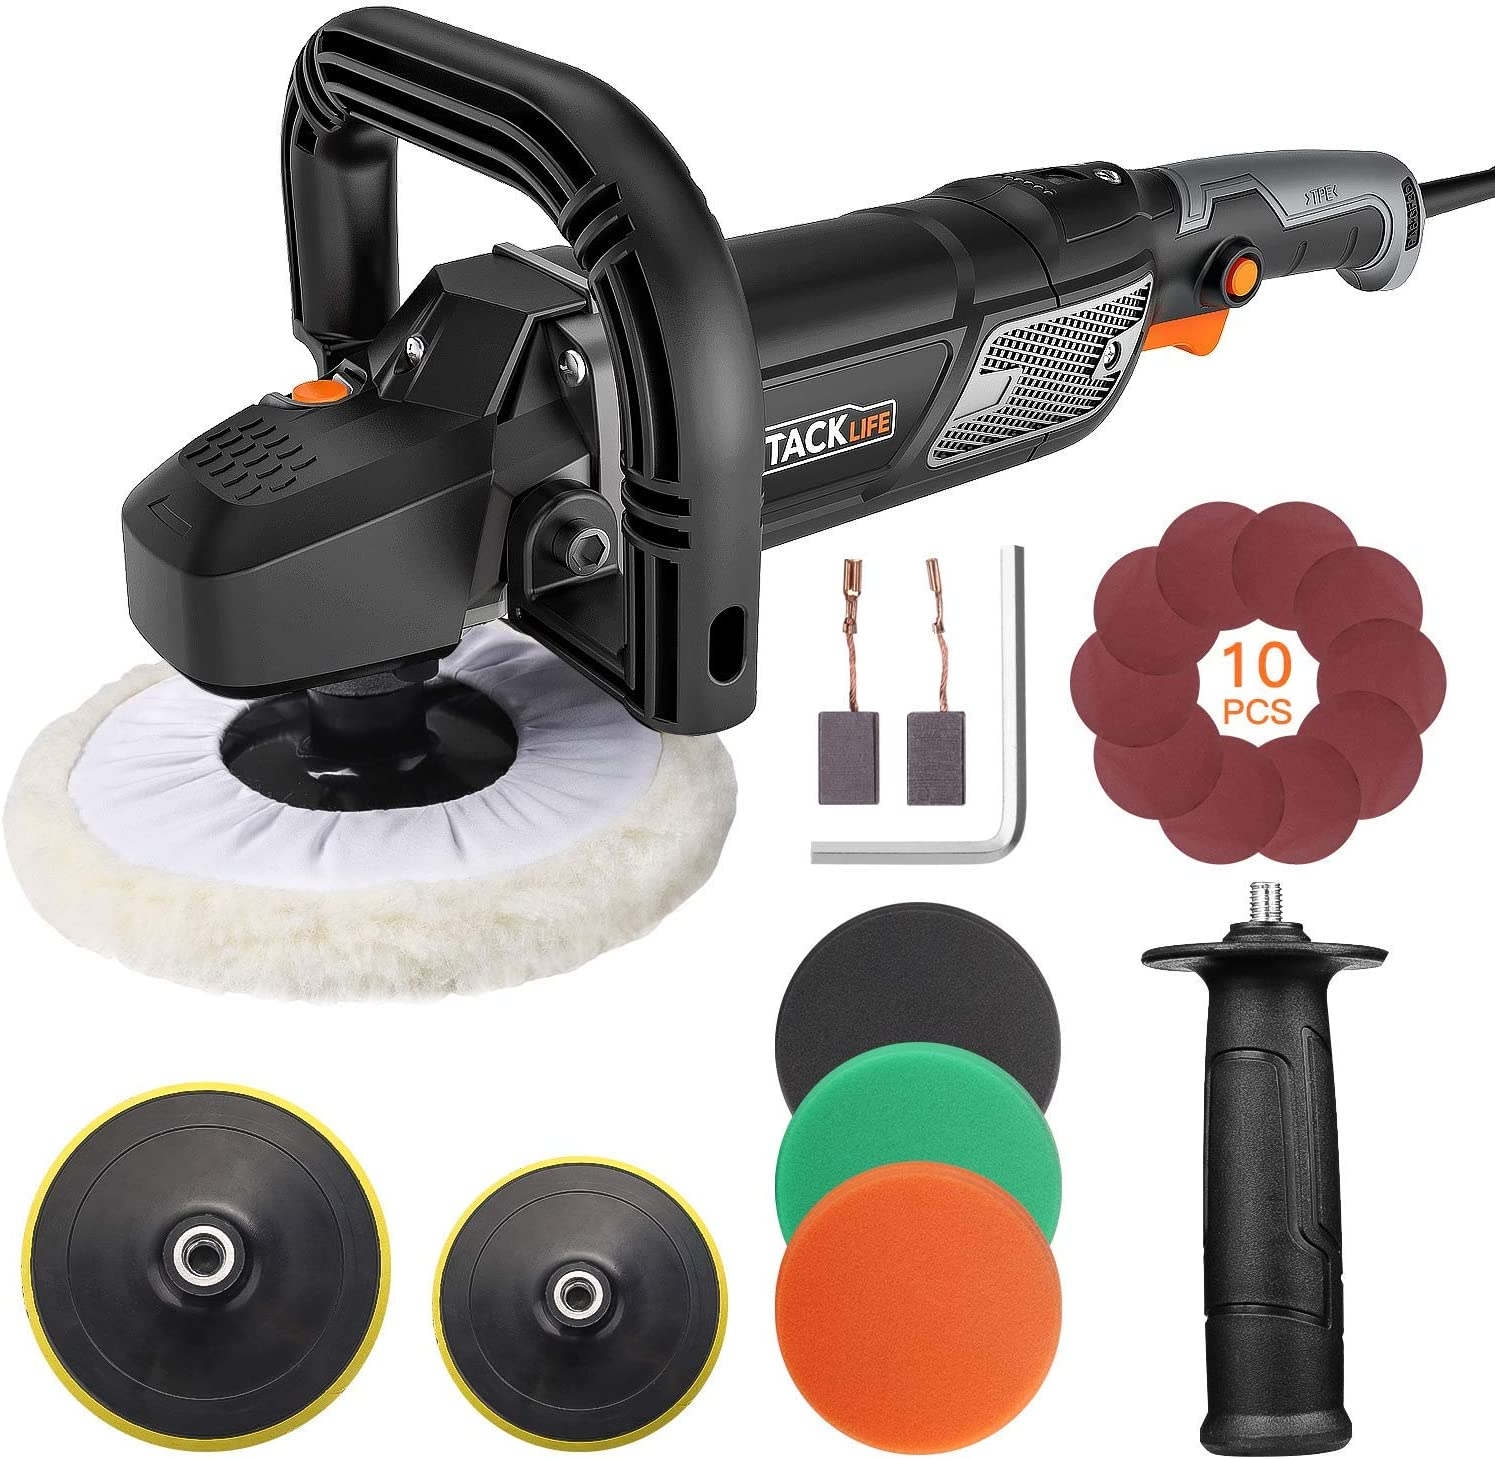 TACKLIFE Polisher, 12.5Amp 1500W Variable Speed Buffer Polisher, 7-Inch 6-Inch Polishing Plate with Digital Screen, Lock Switch, Detachable Handle, Ideal For Car Sanding, Polishing, Waxing – PPGJ01A